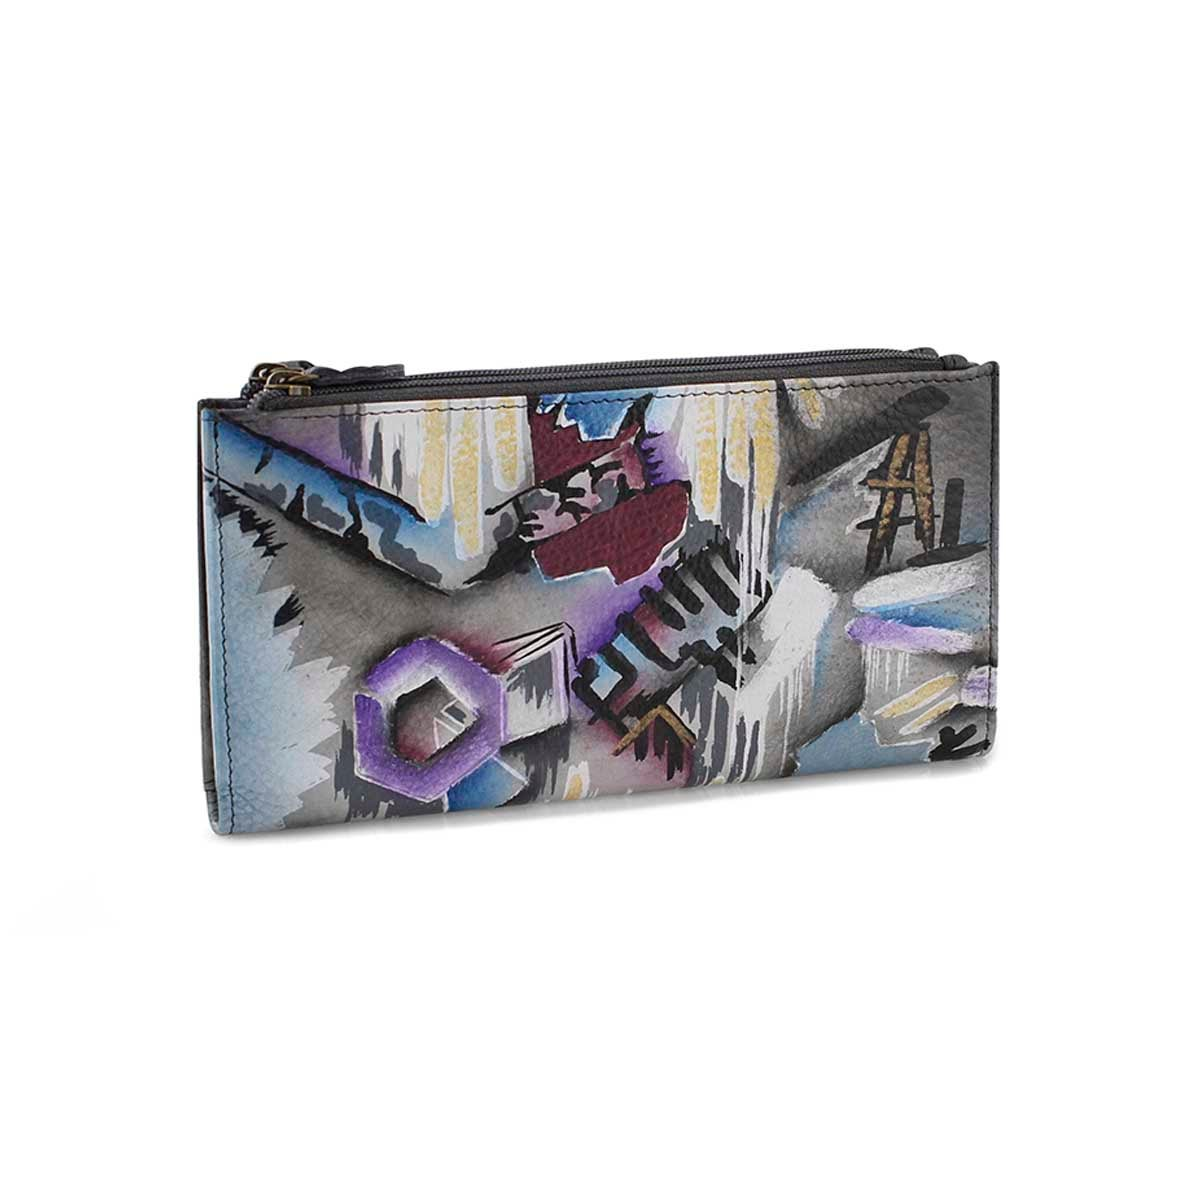 Painted lthr Urban Jungle wallet